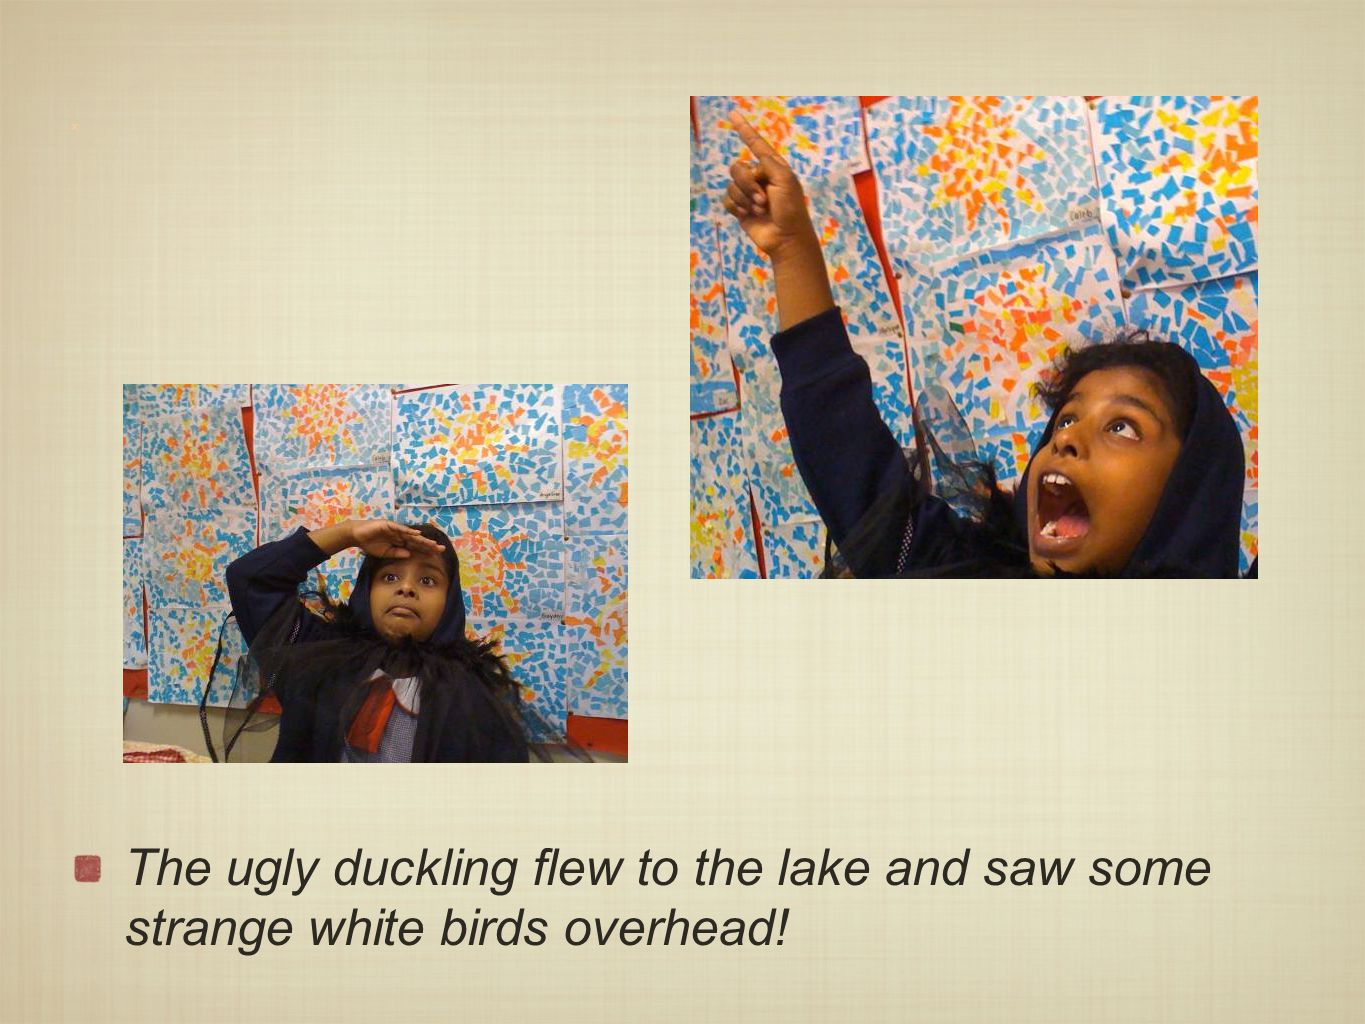 x The ugly duckling flew to the lake and saw some strange white birds overhead!